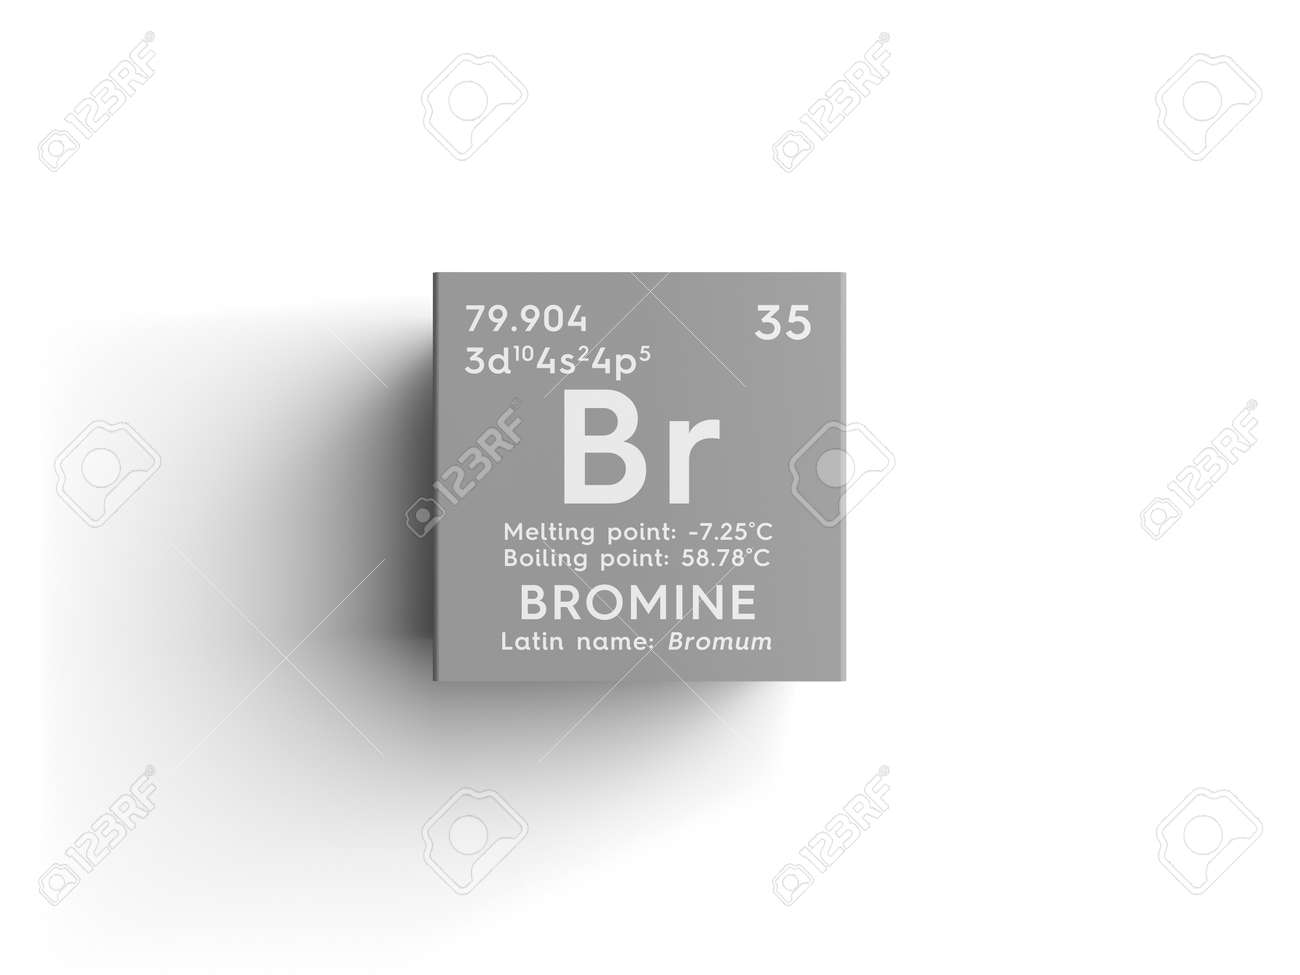 halogens chemical element of mendeleevs periodic table bromine in square - Periodic Table Halogen Symbol